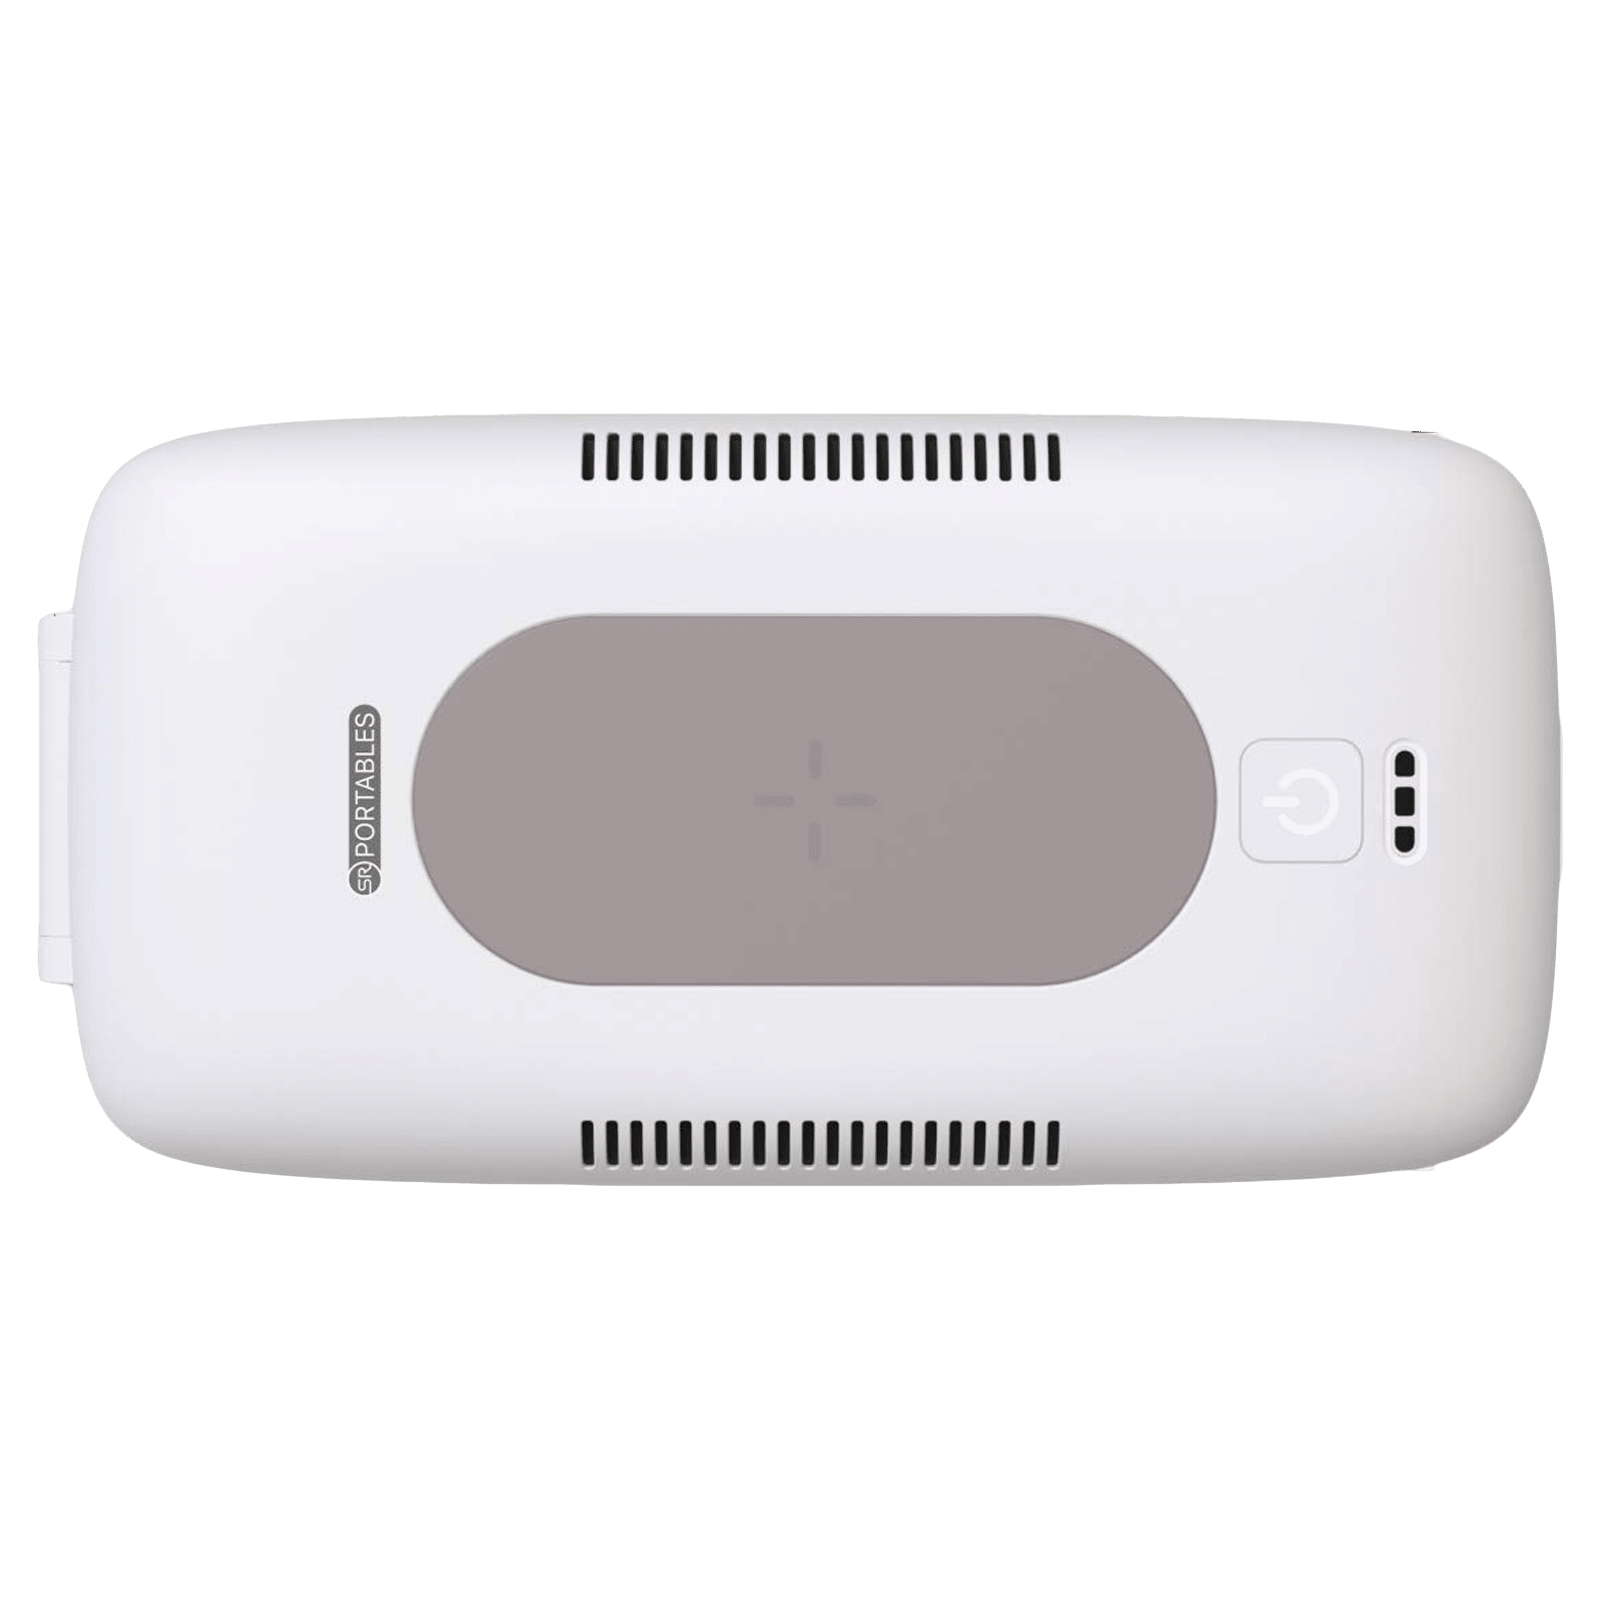 SR Portables Electric LED Device Disinfector (Disinfects Up To 99.99%, SRUVDBWC, White)